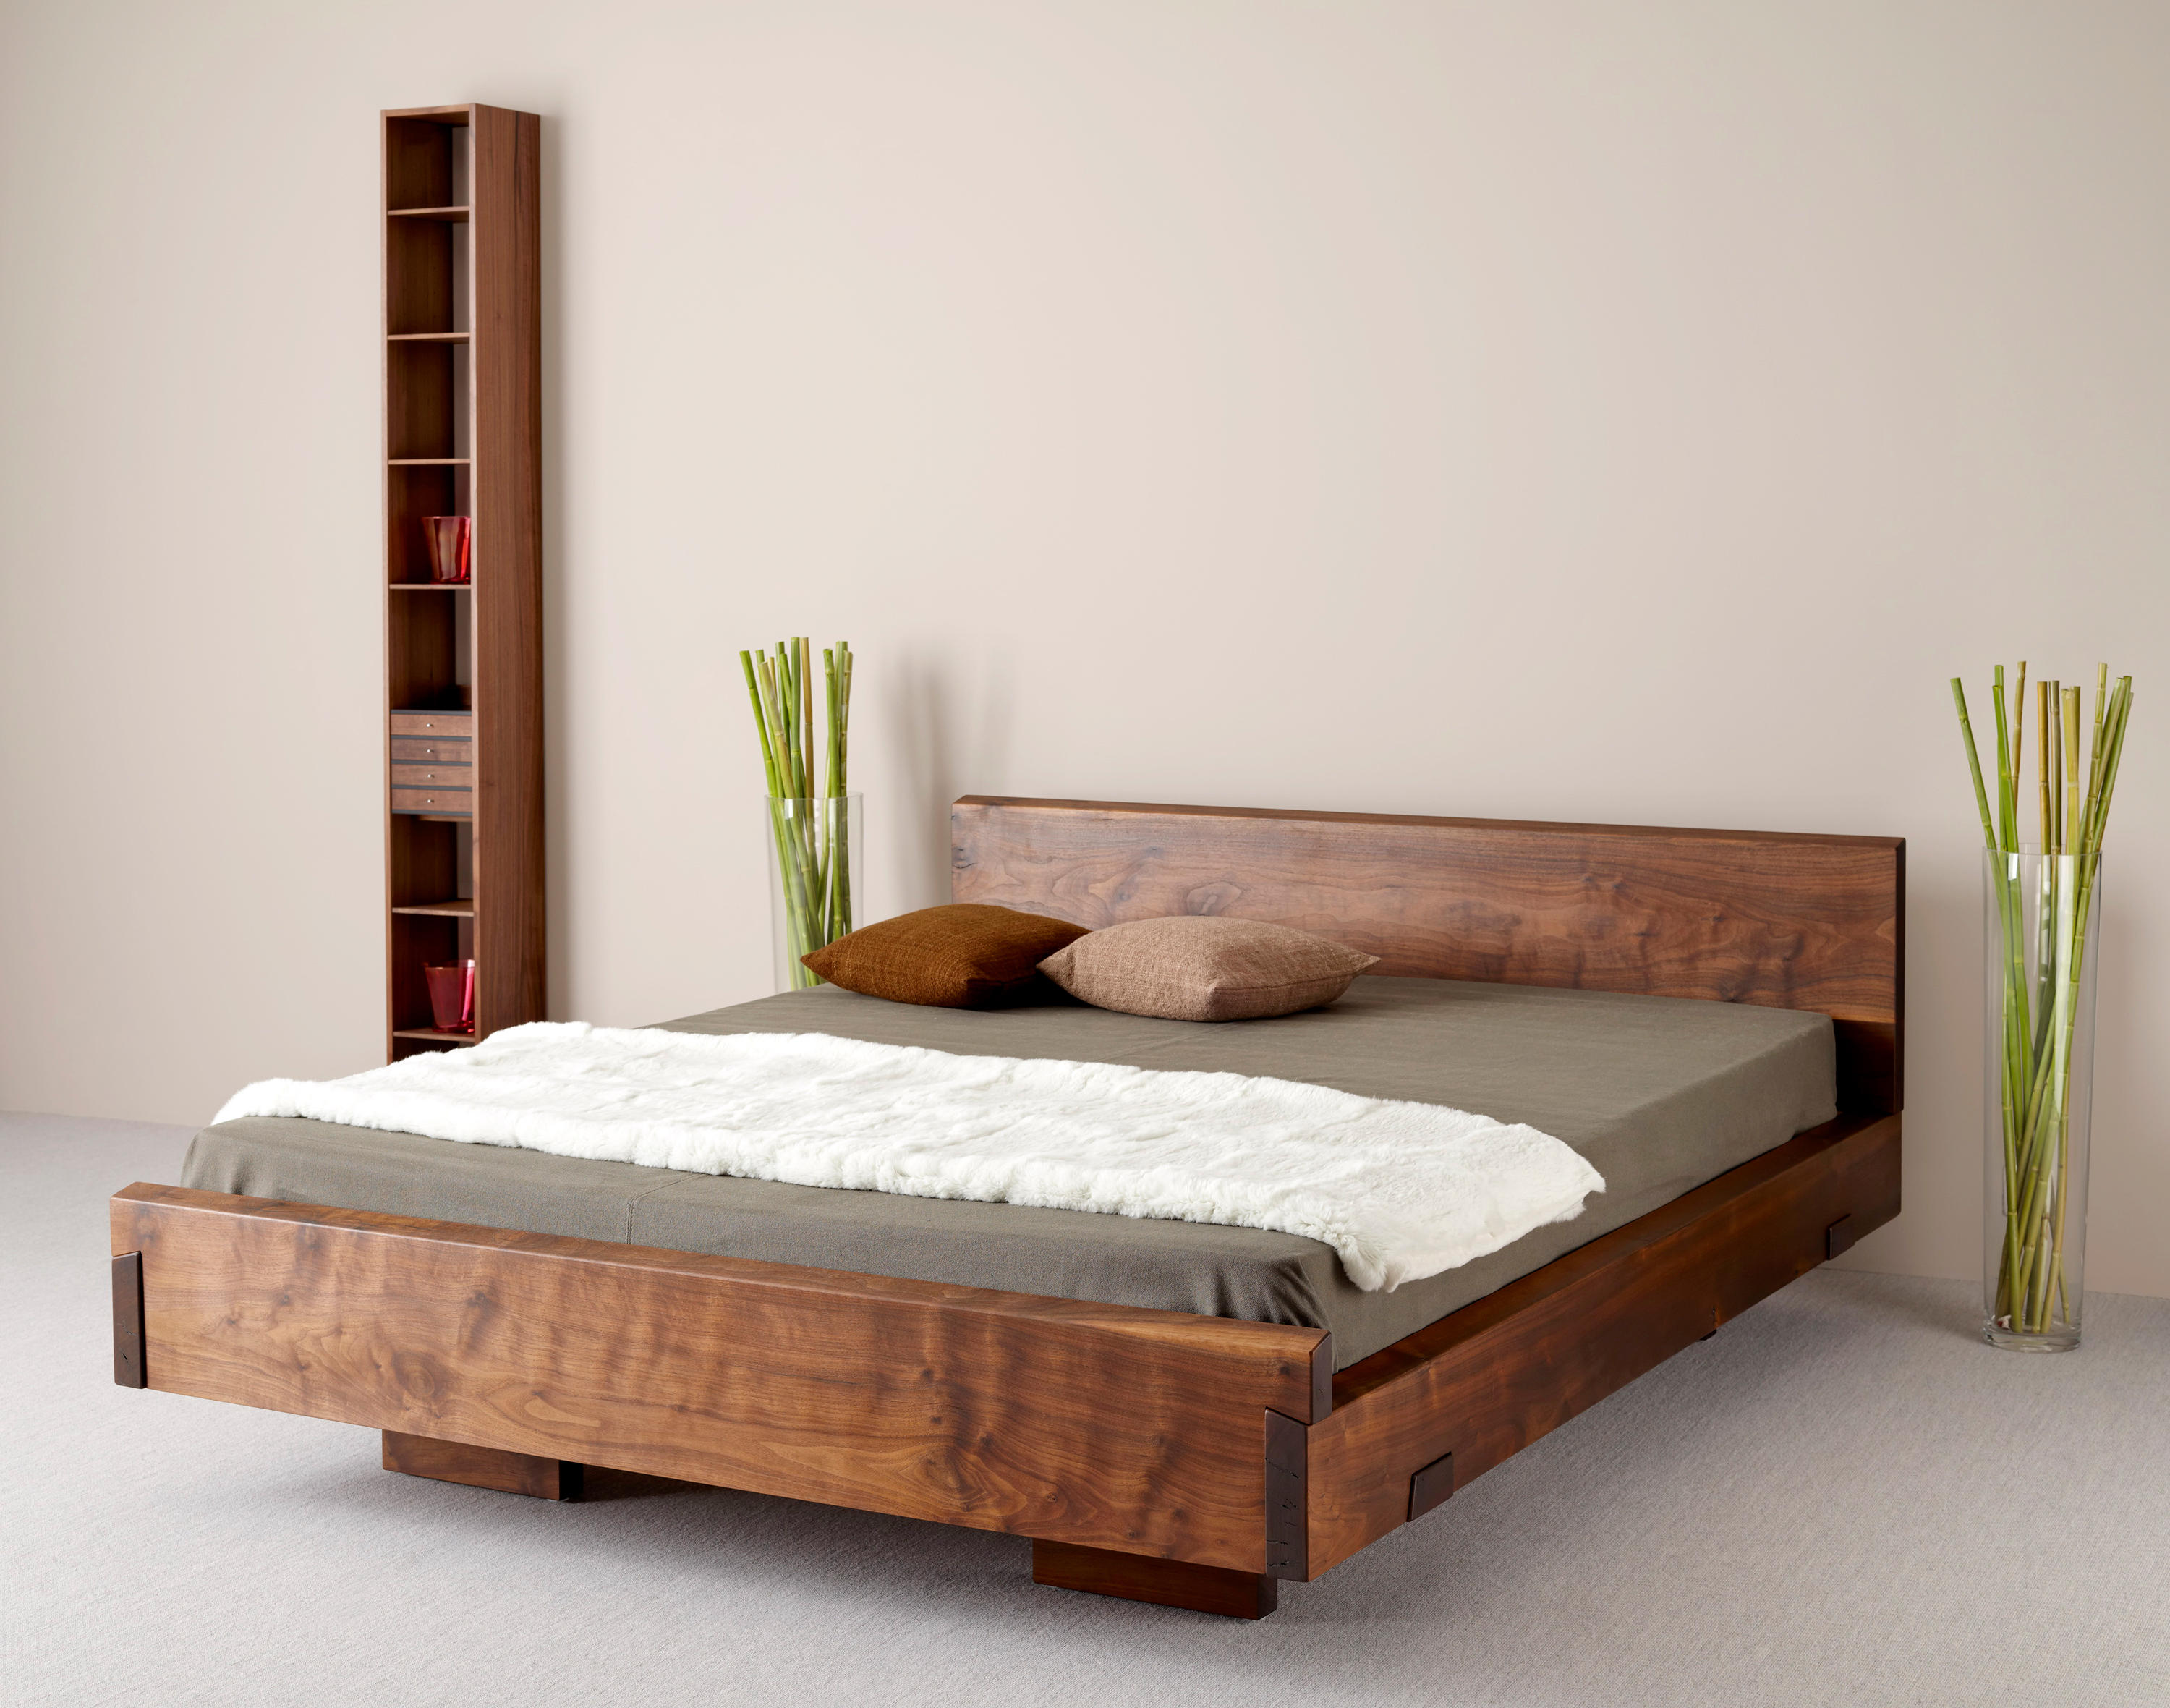 Ign timber night double beds from ign design for Double bed design photos